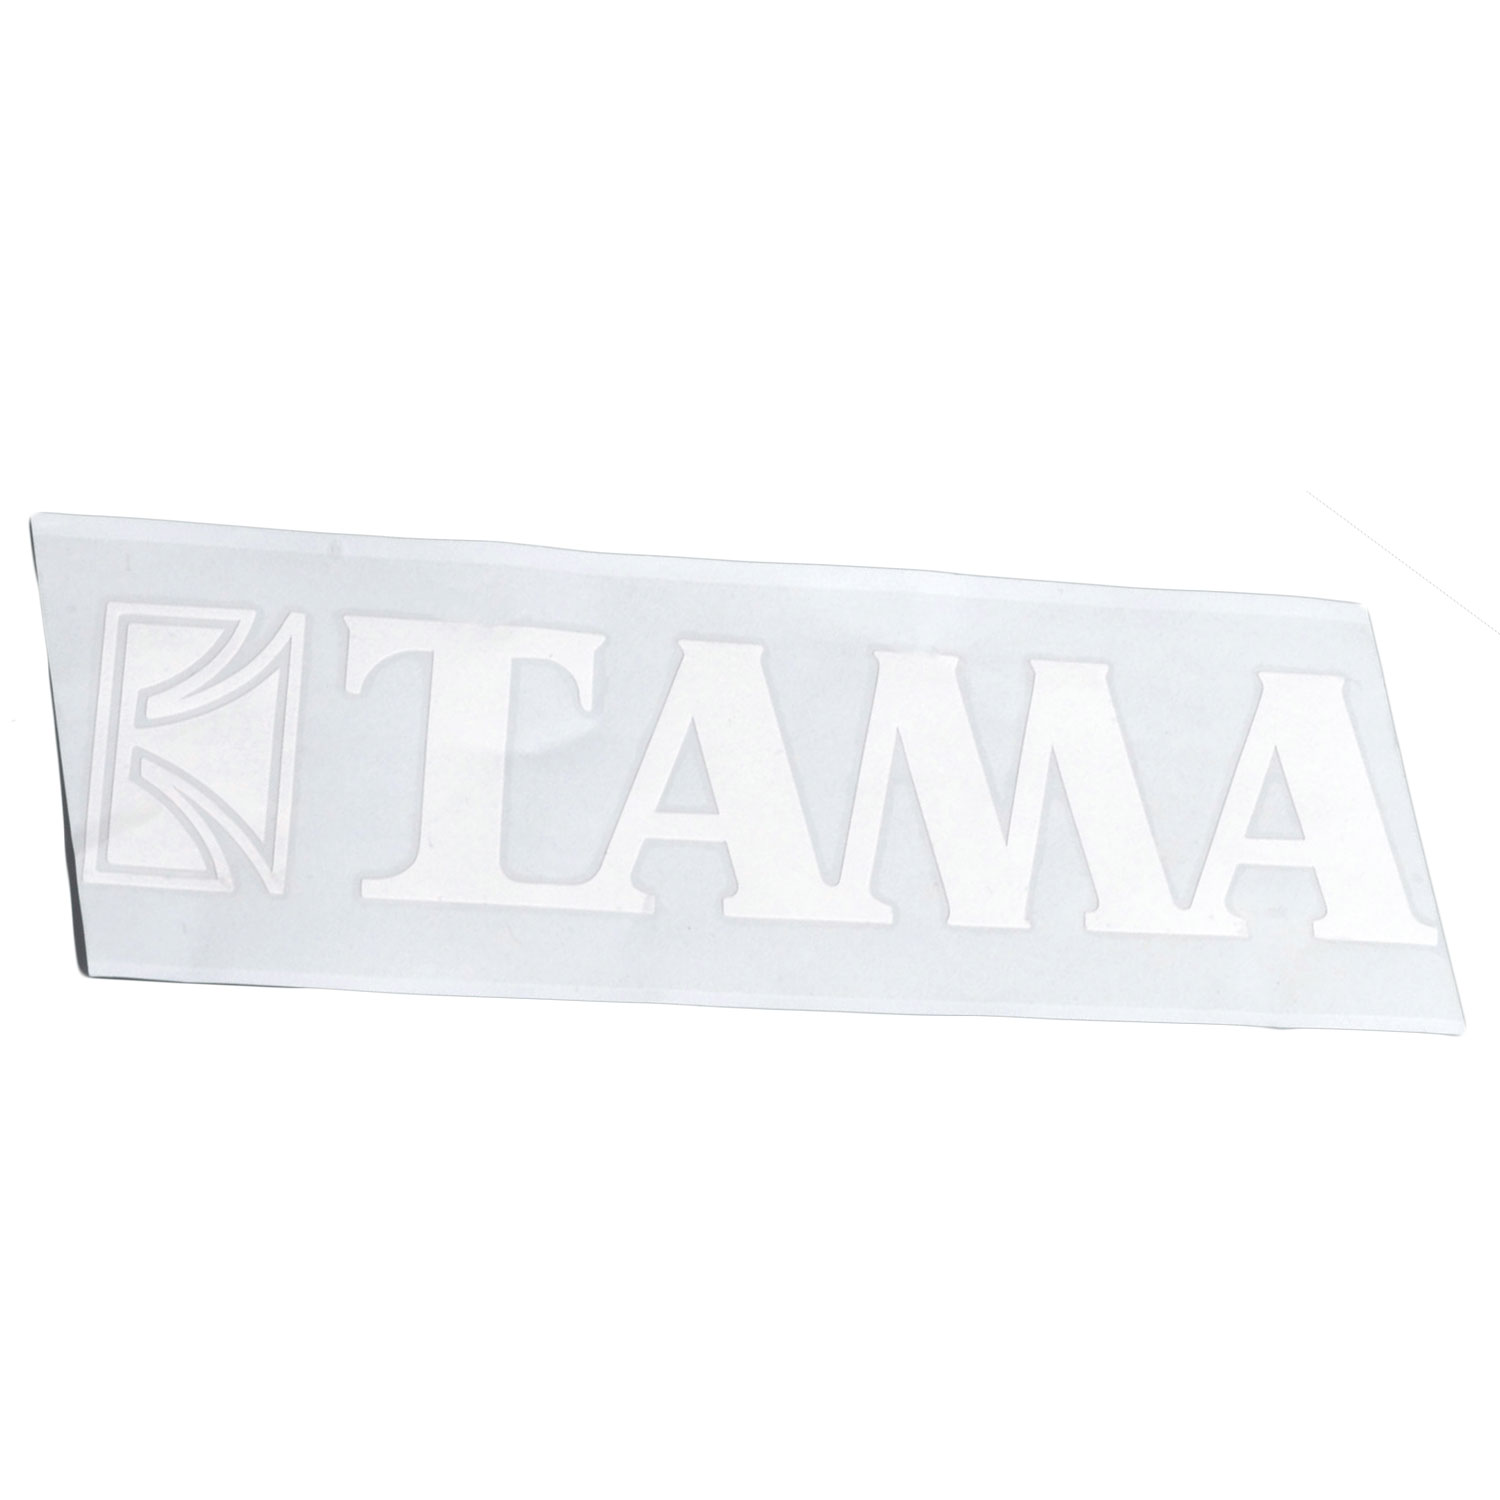 "Tama White Logo Sticker for 24"" Bass Drum"